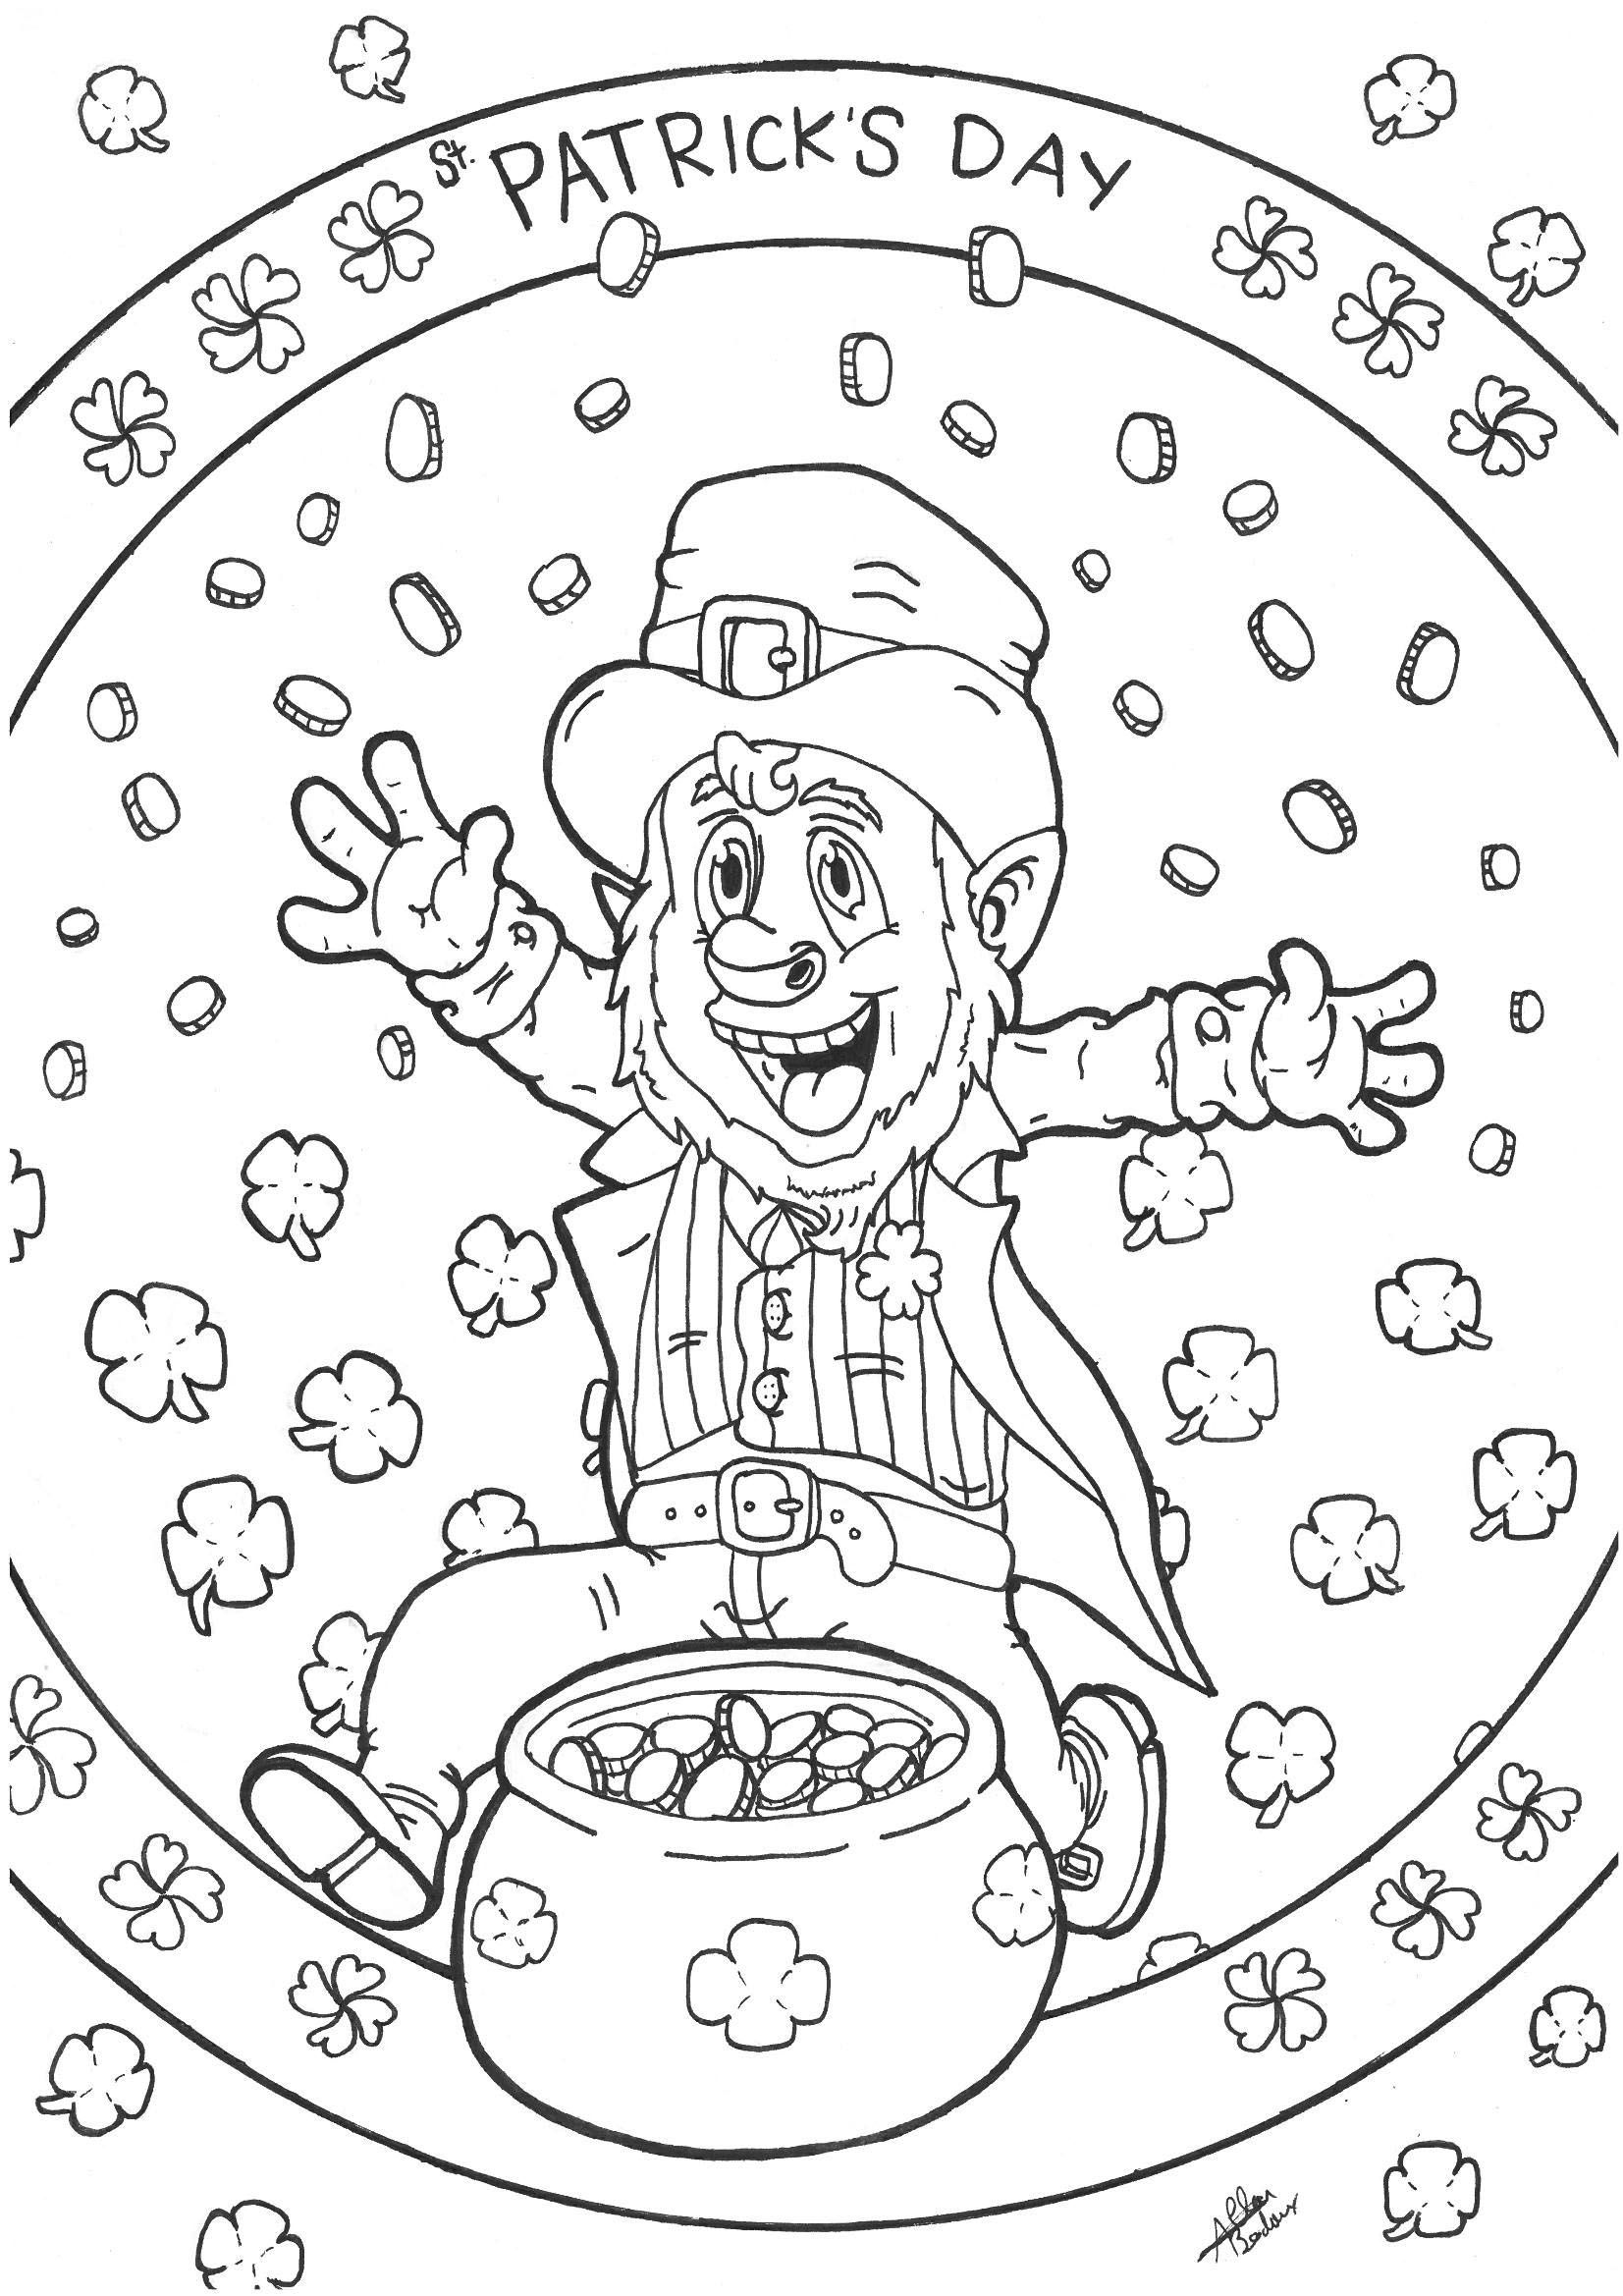 A Free Leprechaun Coloring Page Cool Coloring Pages Mickey Mouse Coloring Pages Coloring Pages [ 2338 x 1653 Pixel ]